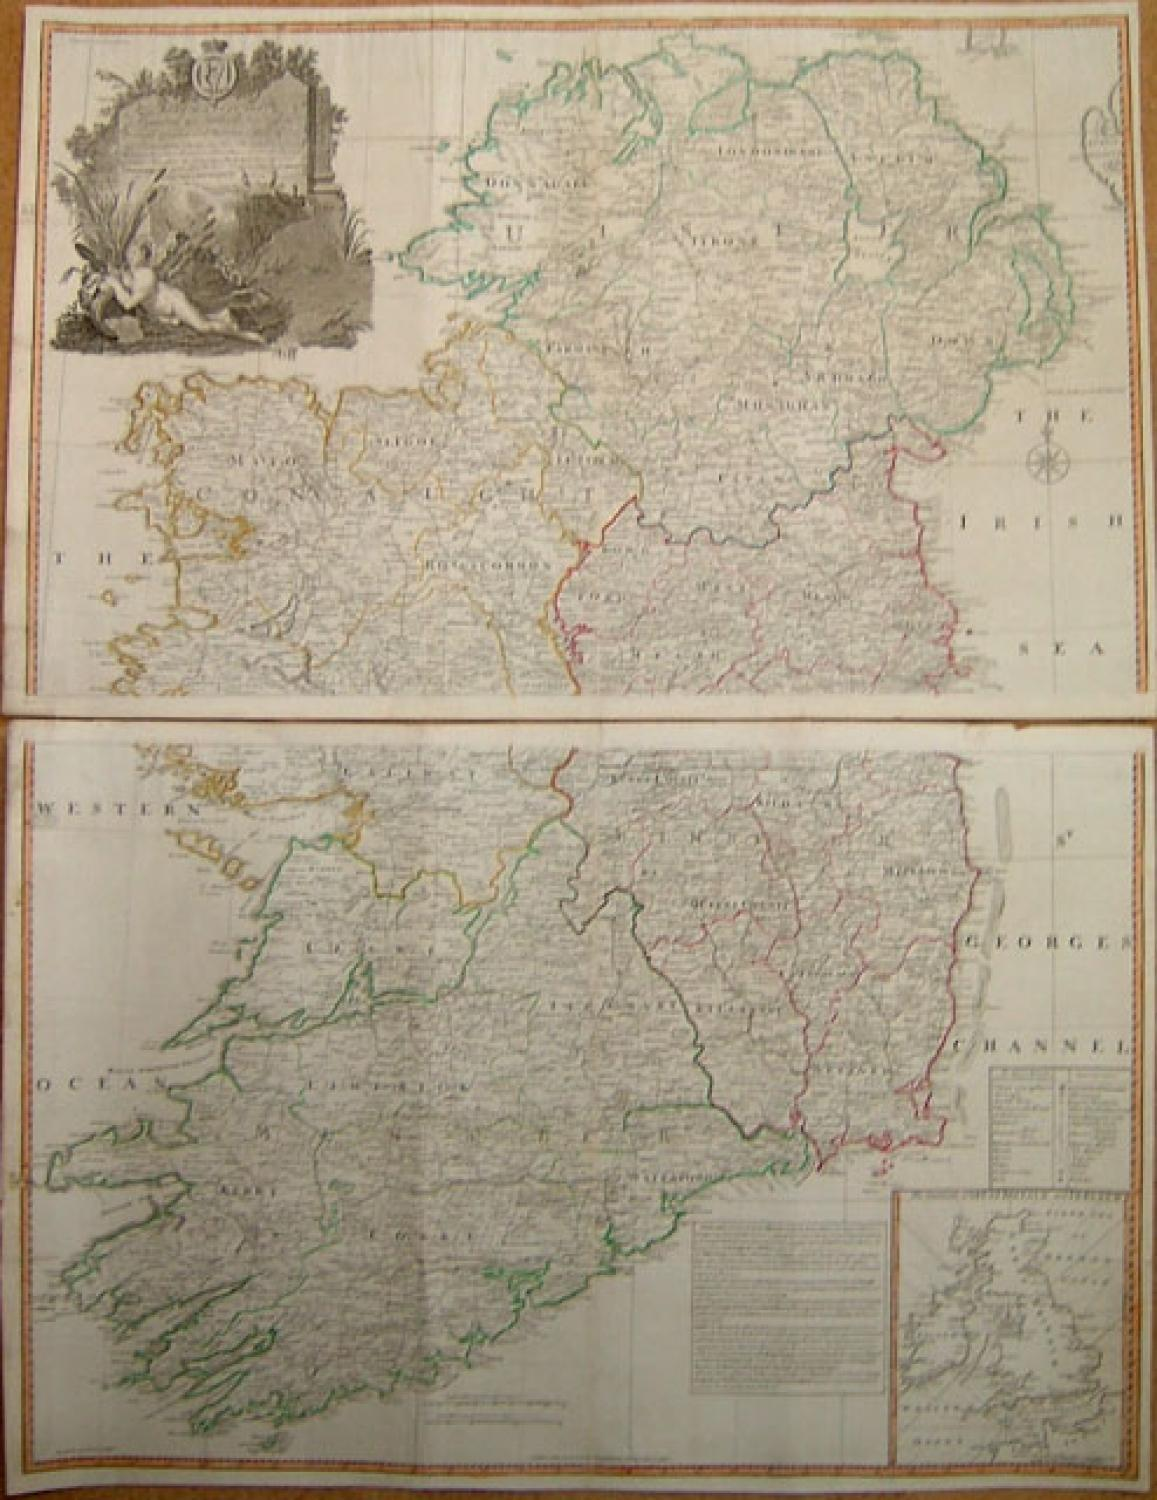 SOLD A map of the Kingdom of Ireland